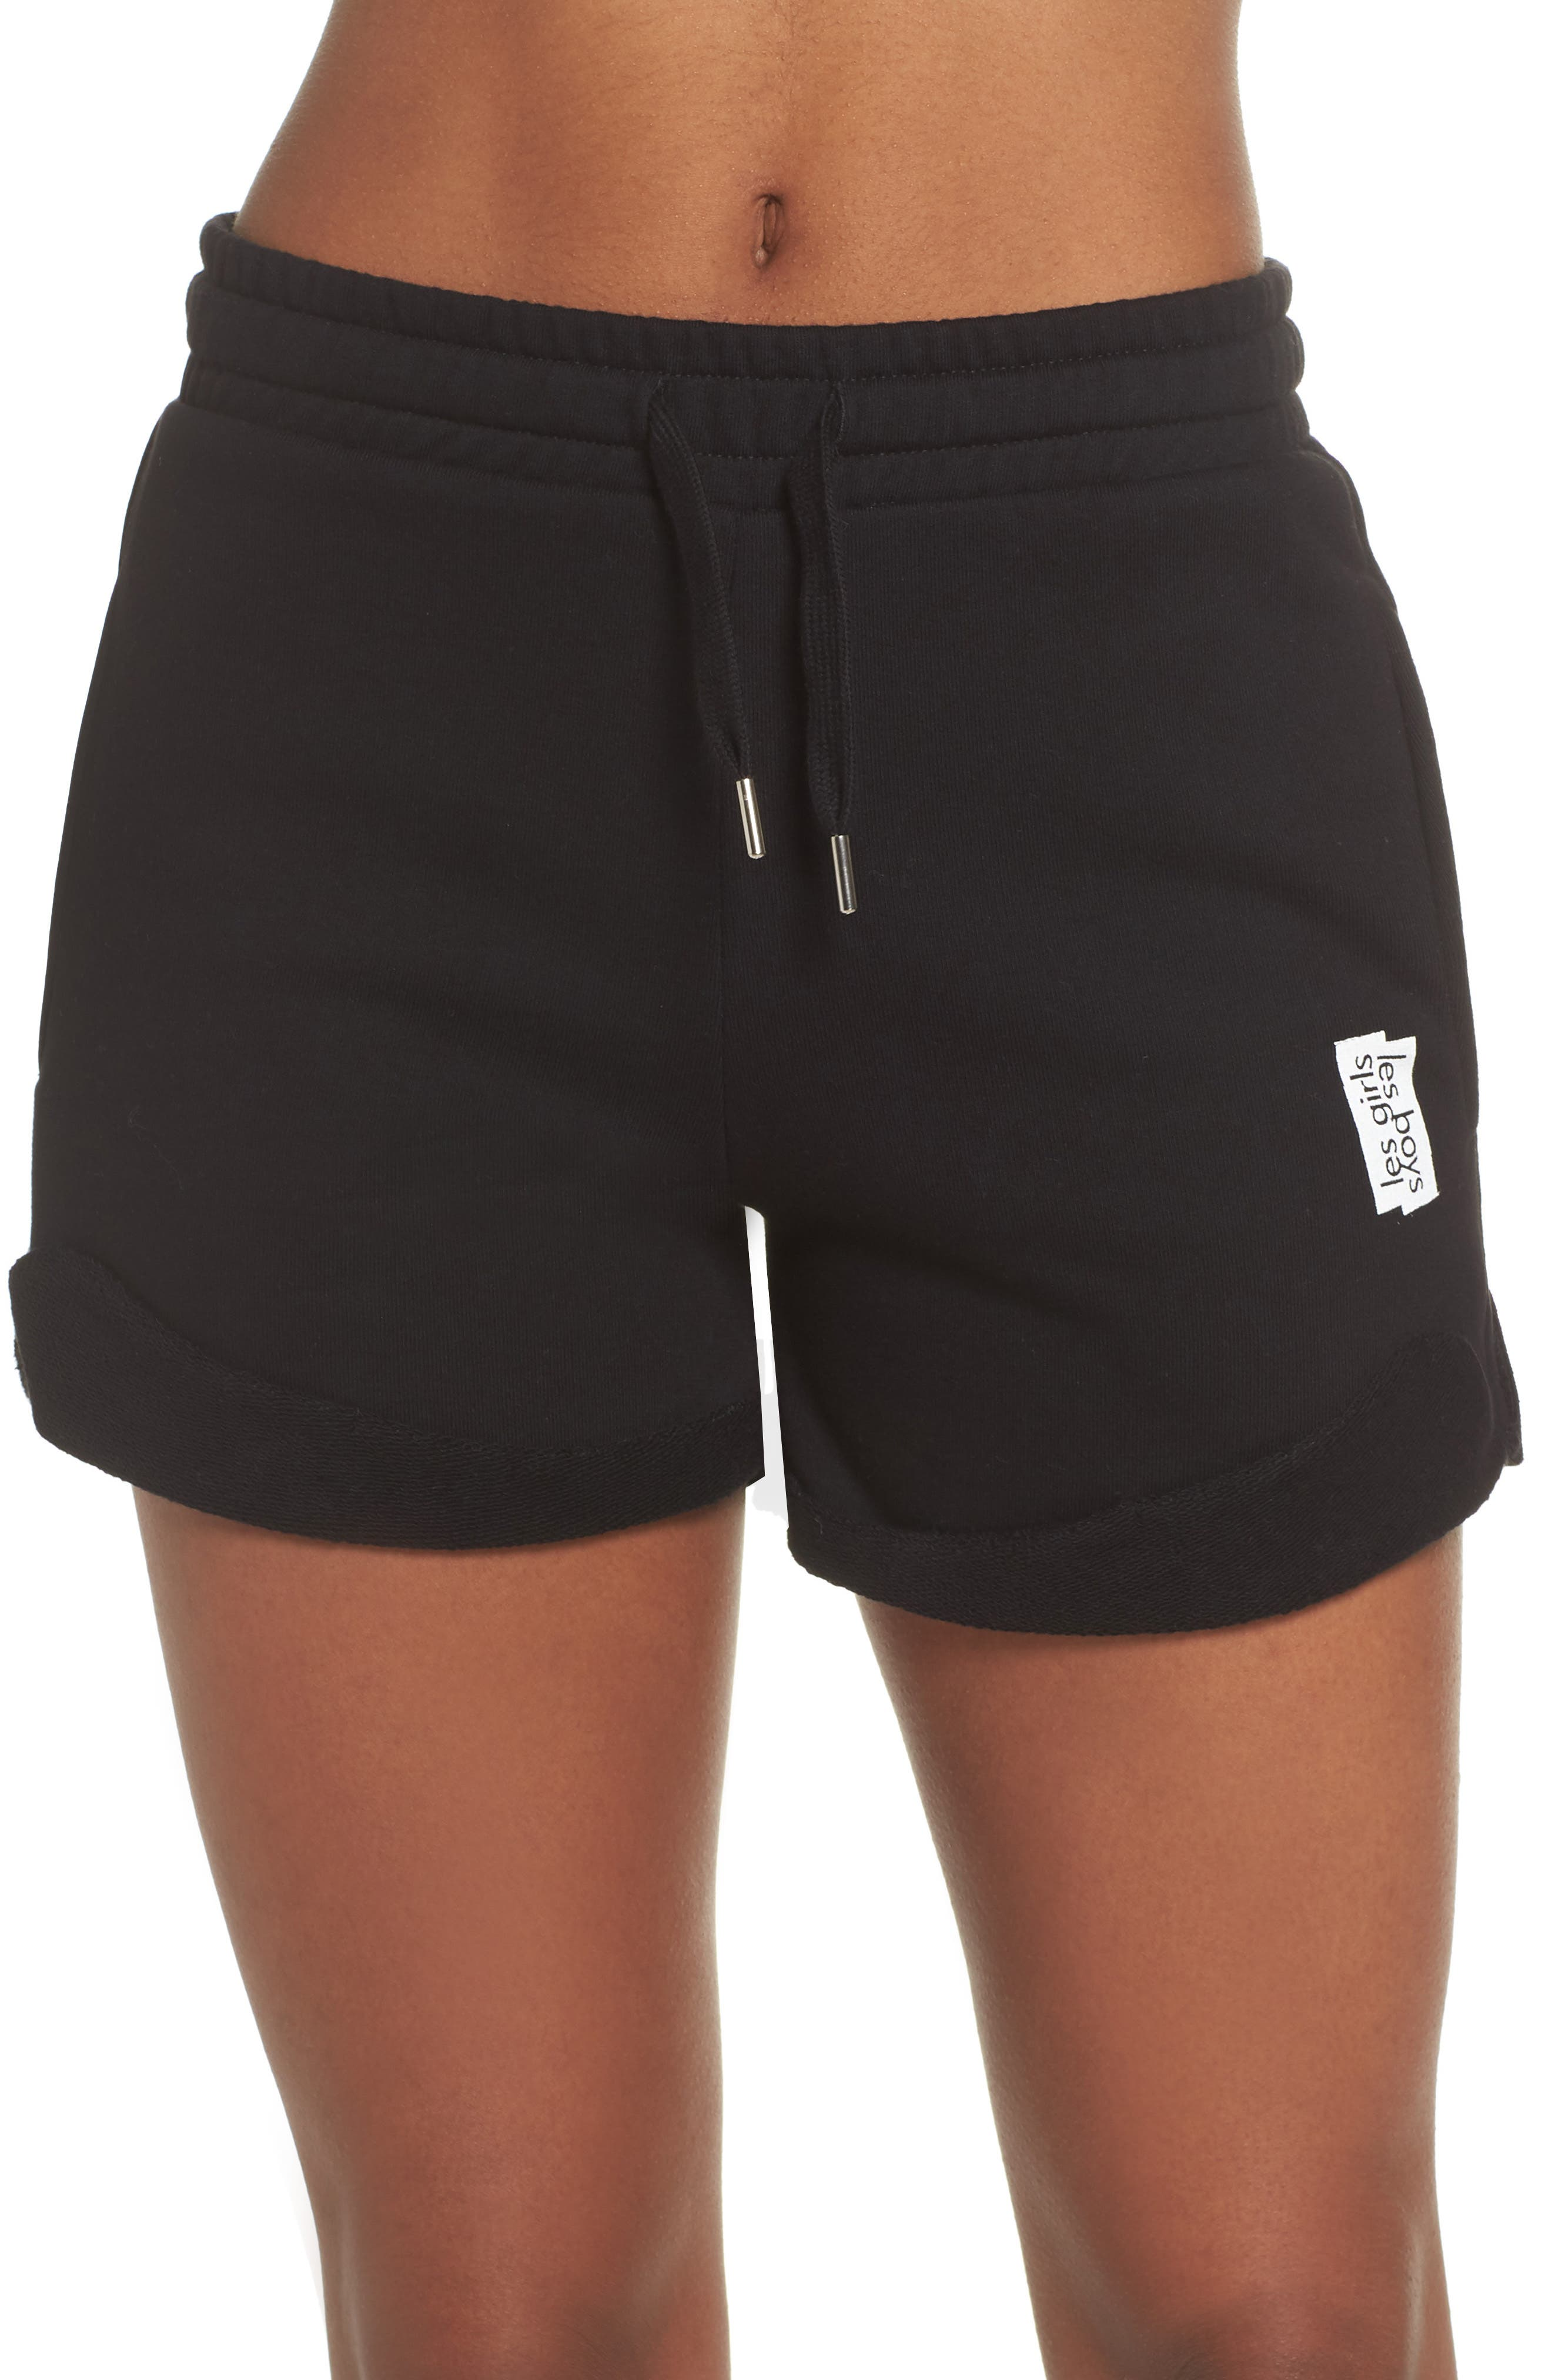 French Terry High Waist Shorts,                         Main,                         color, 002